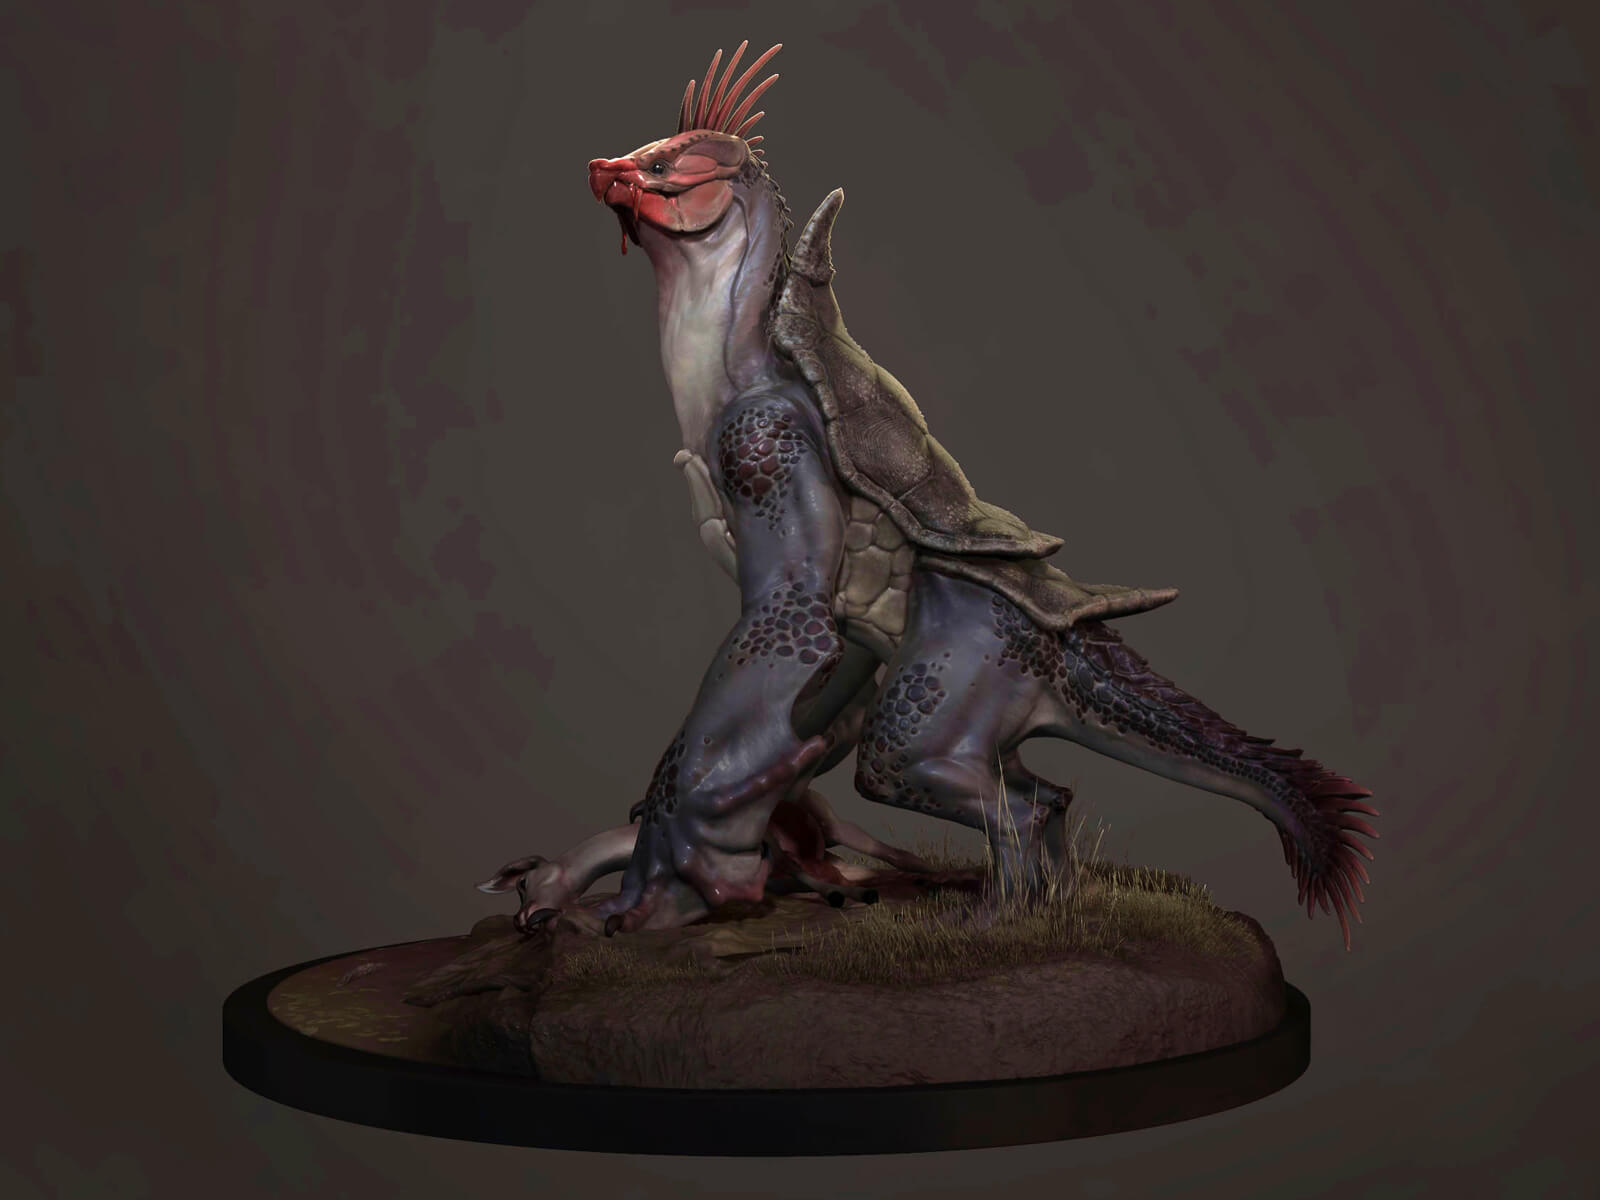 computer-generated 3D model of an animal that looks like a cross between a rooster and a lizard